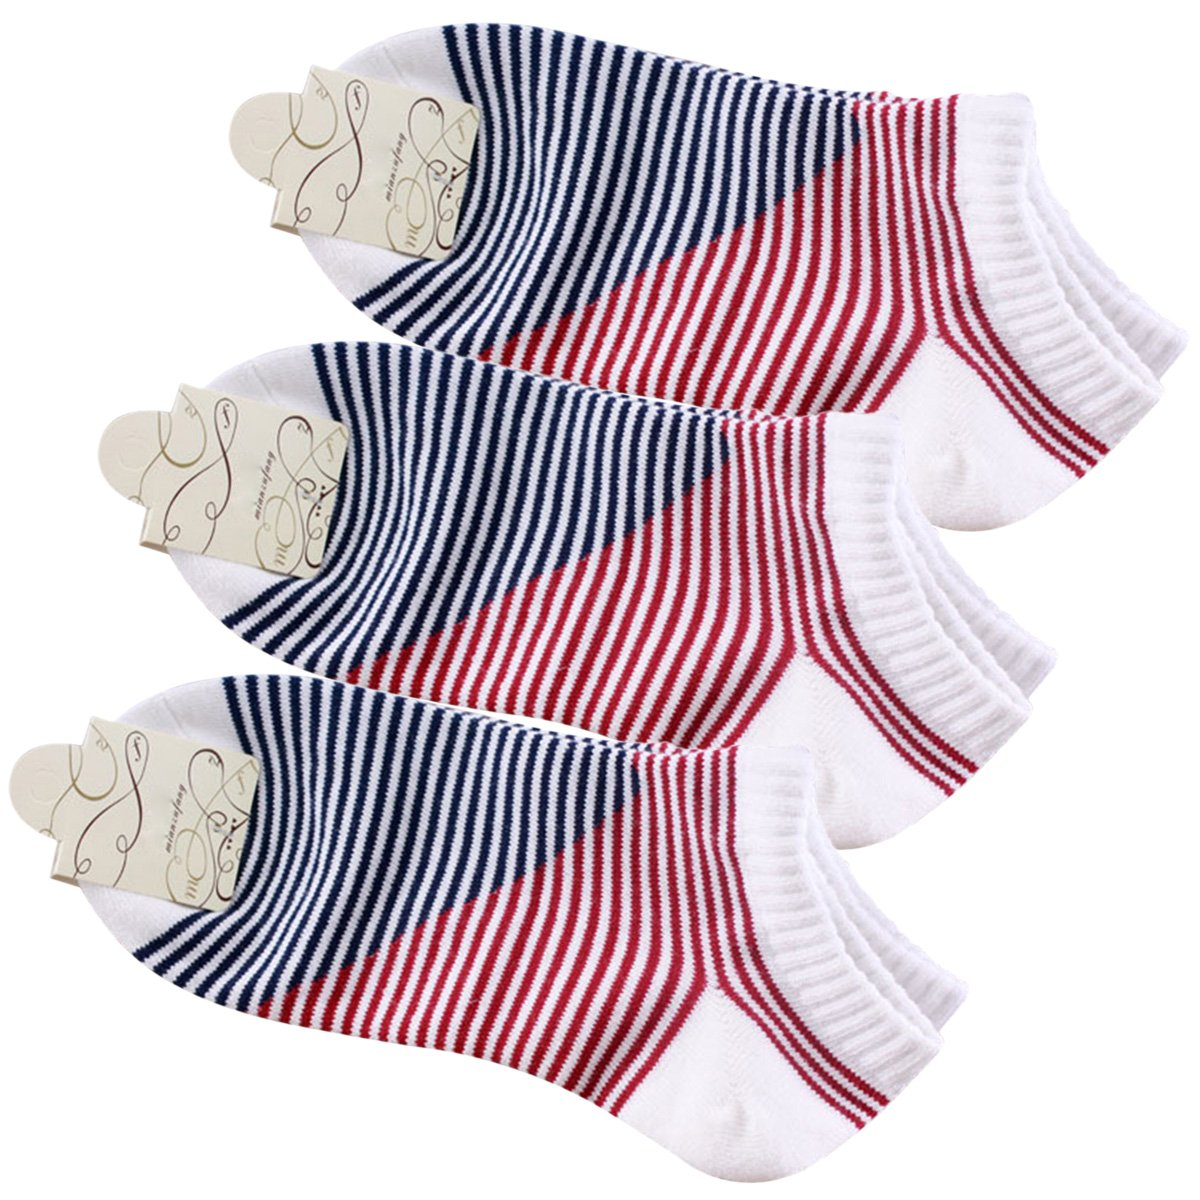 Sasairy 3 Pairs Womens Cotton Low Cut Socks Work Wear Sock Anti Bacterial Invisible Sports Striped Socking